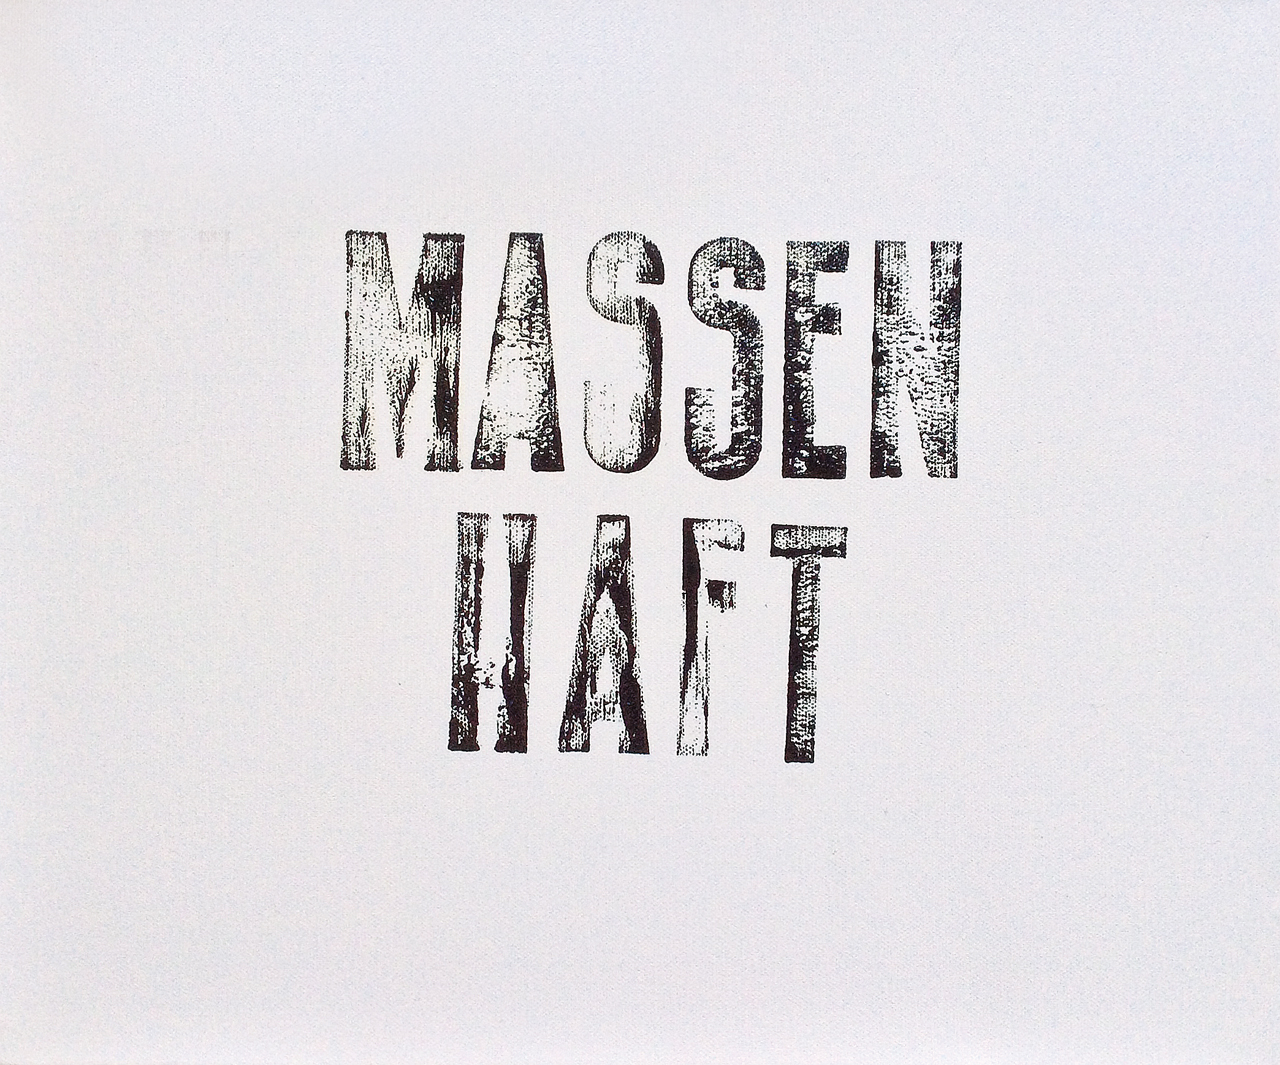 Massenhaft.